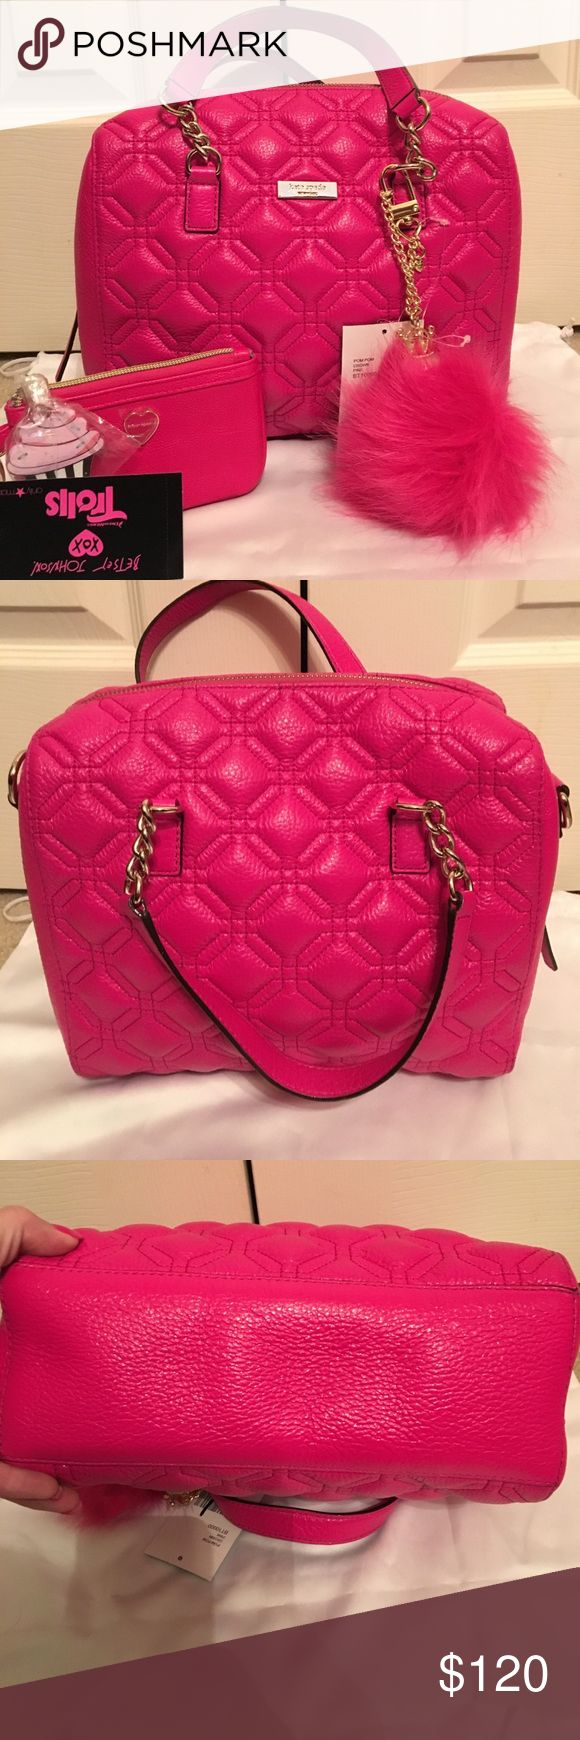 Kate Spade cute pink bag 👛 Very nice kate Spade hot pink bag. No flaws or stains. TV will be higher😊😘❤️💋💕🌹🦋🐬 kate spade Bags Wallets